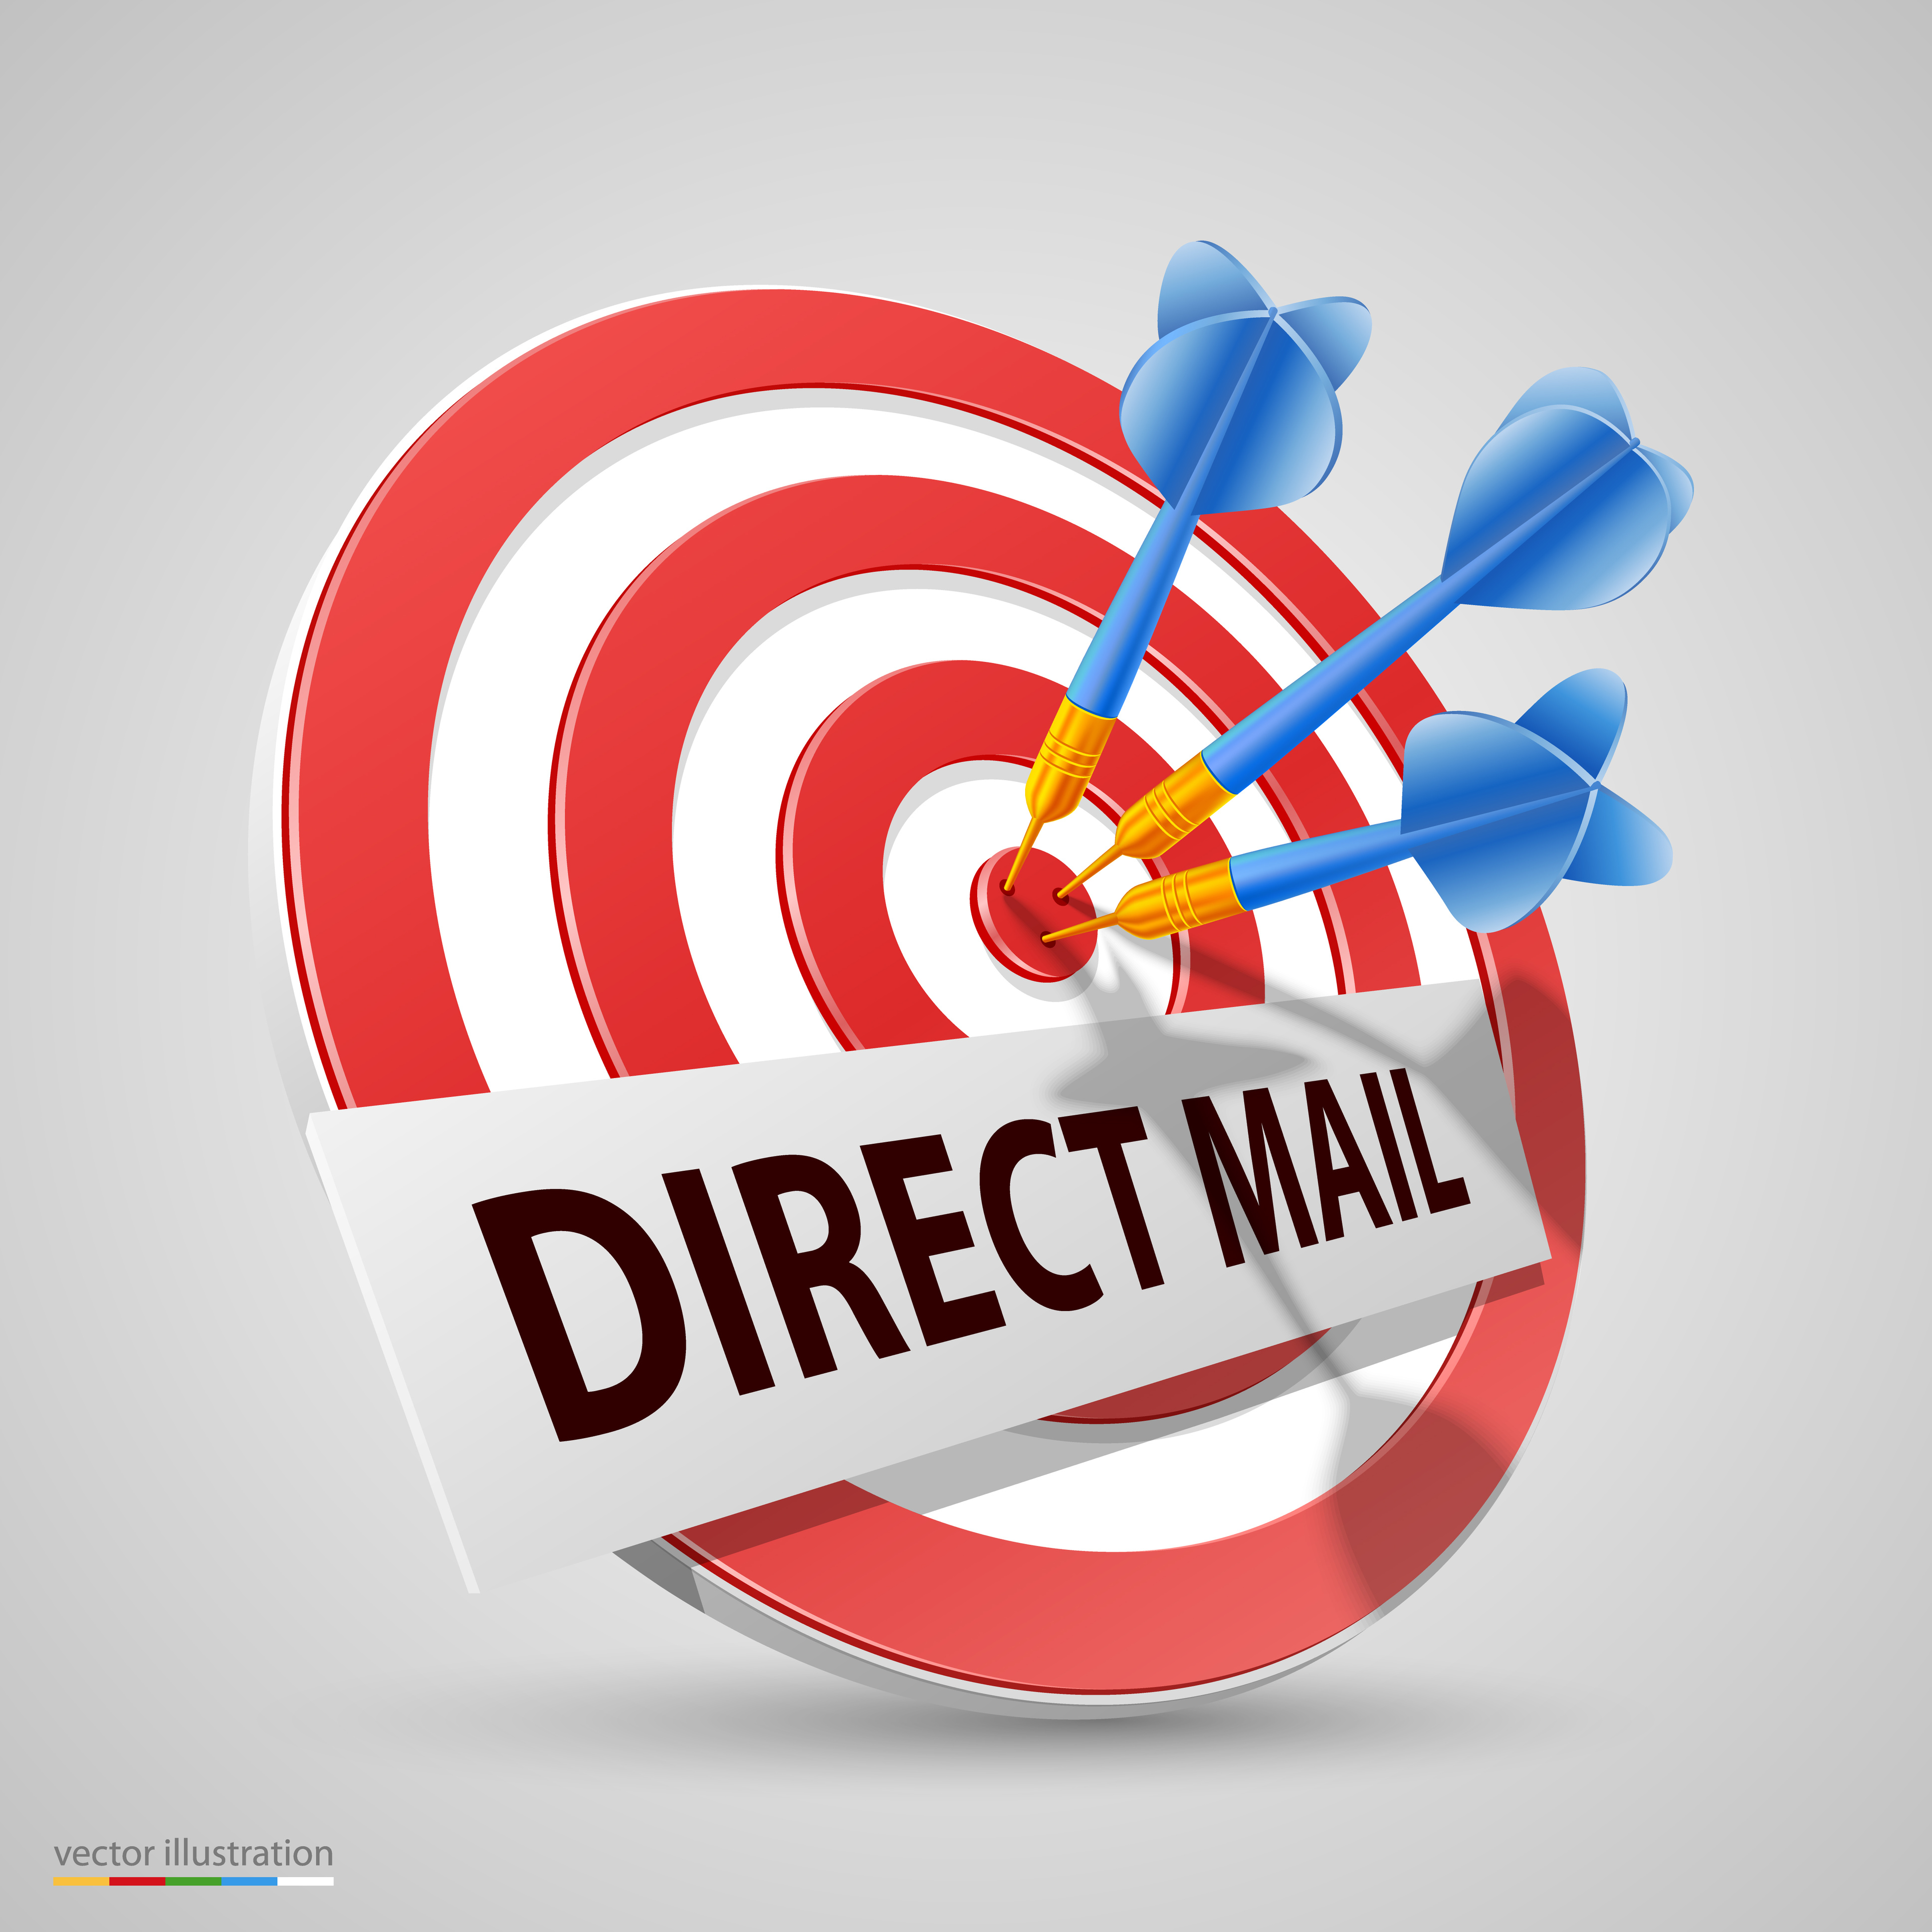 Direct Mail Now - 3 Reasons Why